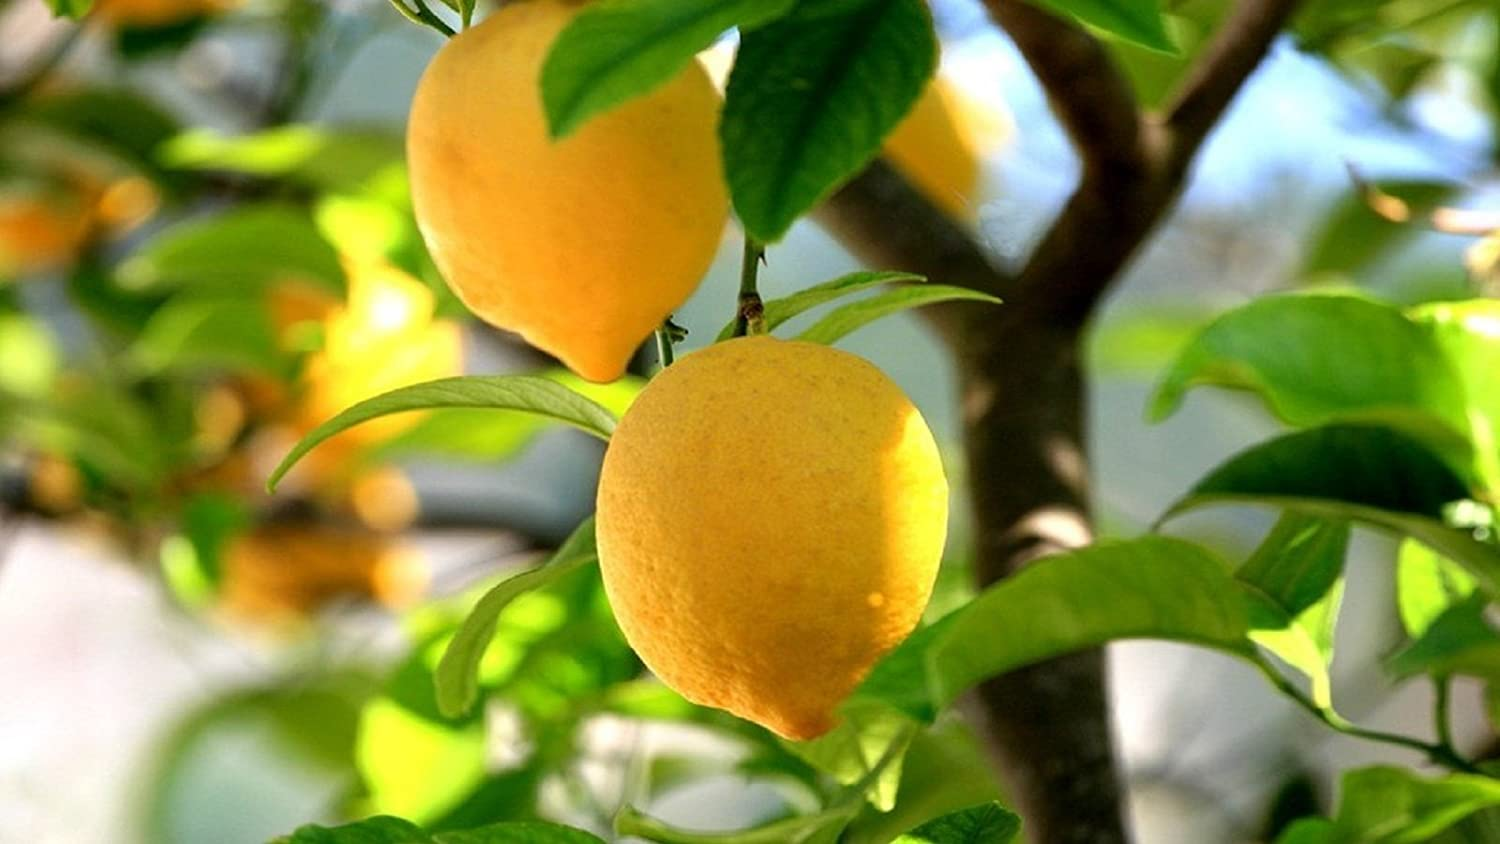 Lemon tree images galleries with a bite for Lemon plant images